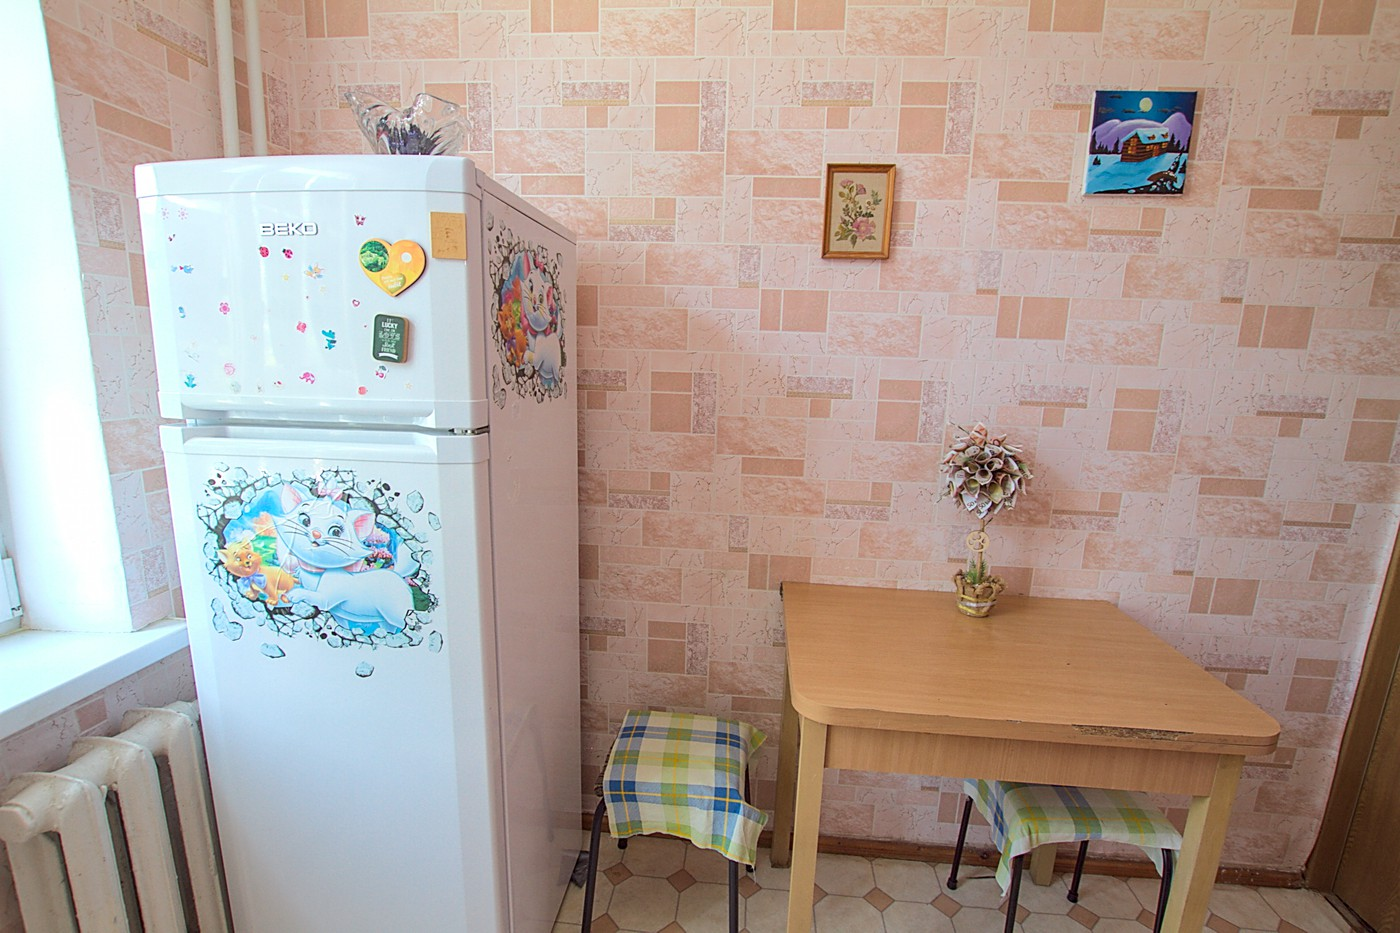 Cheap_rent_apartmet_Chisinau_Riscani_13.jpg